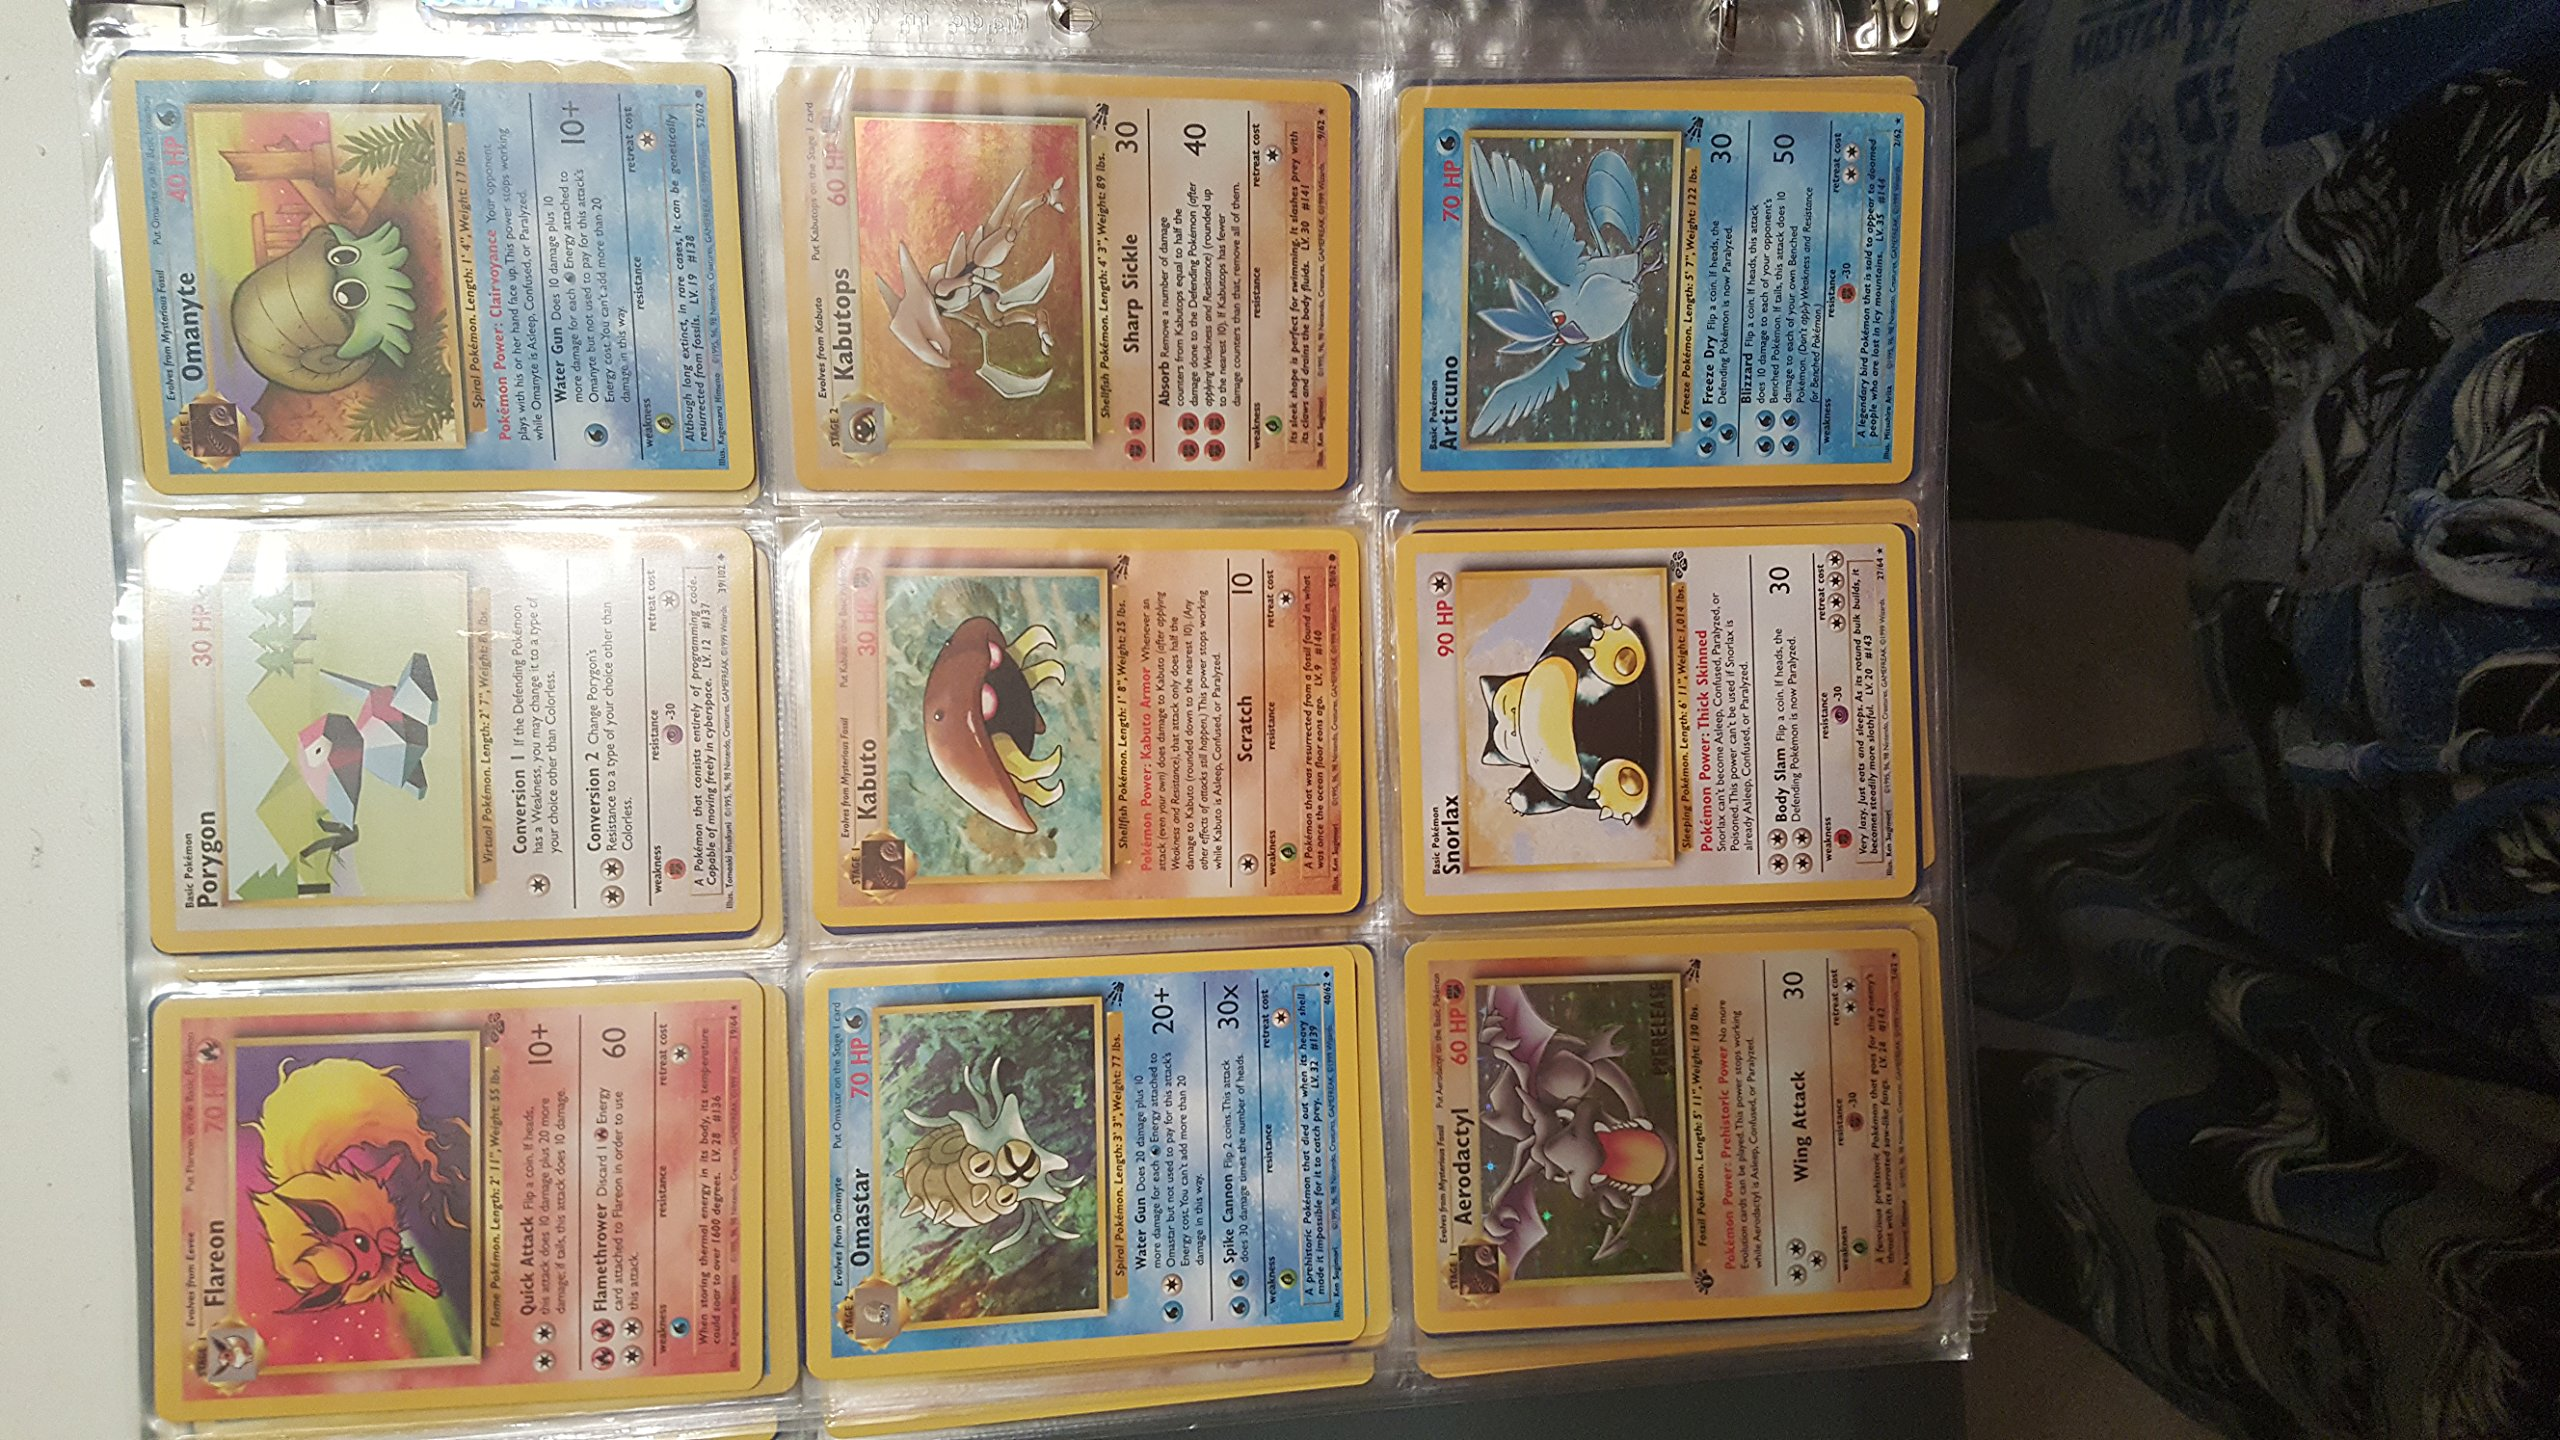 Pokemon COMPLETE Set of ORIGINAL 151/150 Cards (Contains Base, Jungle, Fossil Cards) by Pokemon (Image #8)